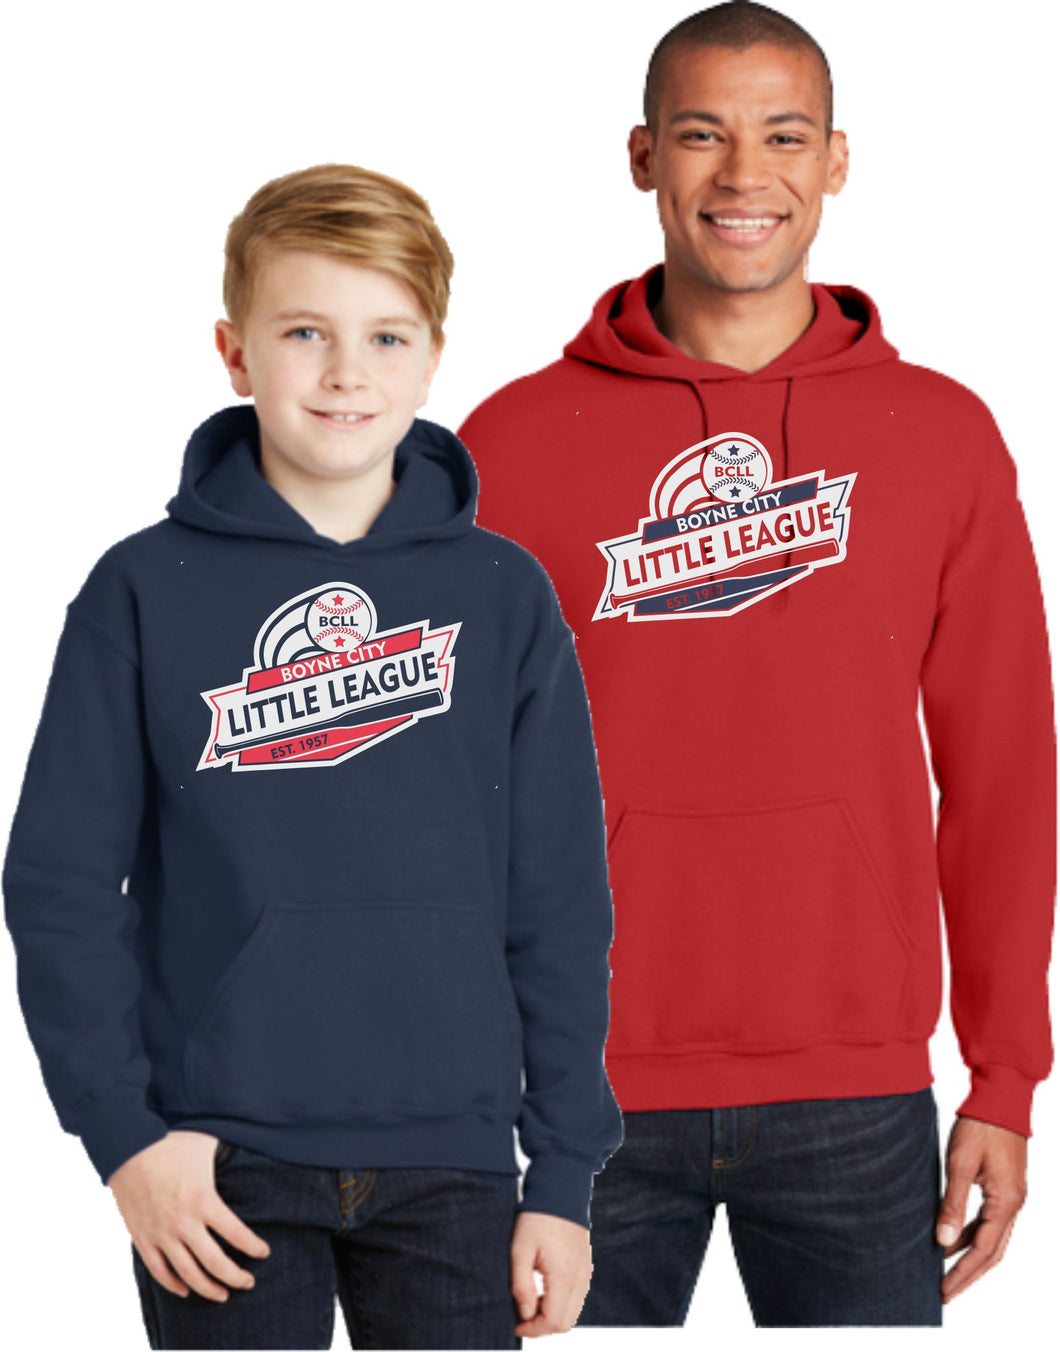 BCLL Cotton Hooded Sweatshirt